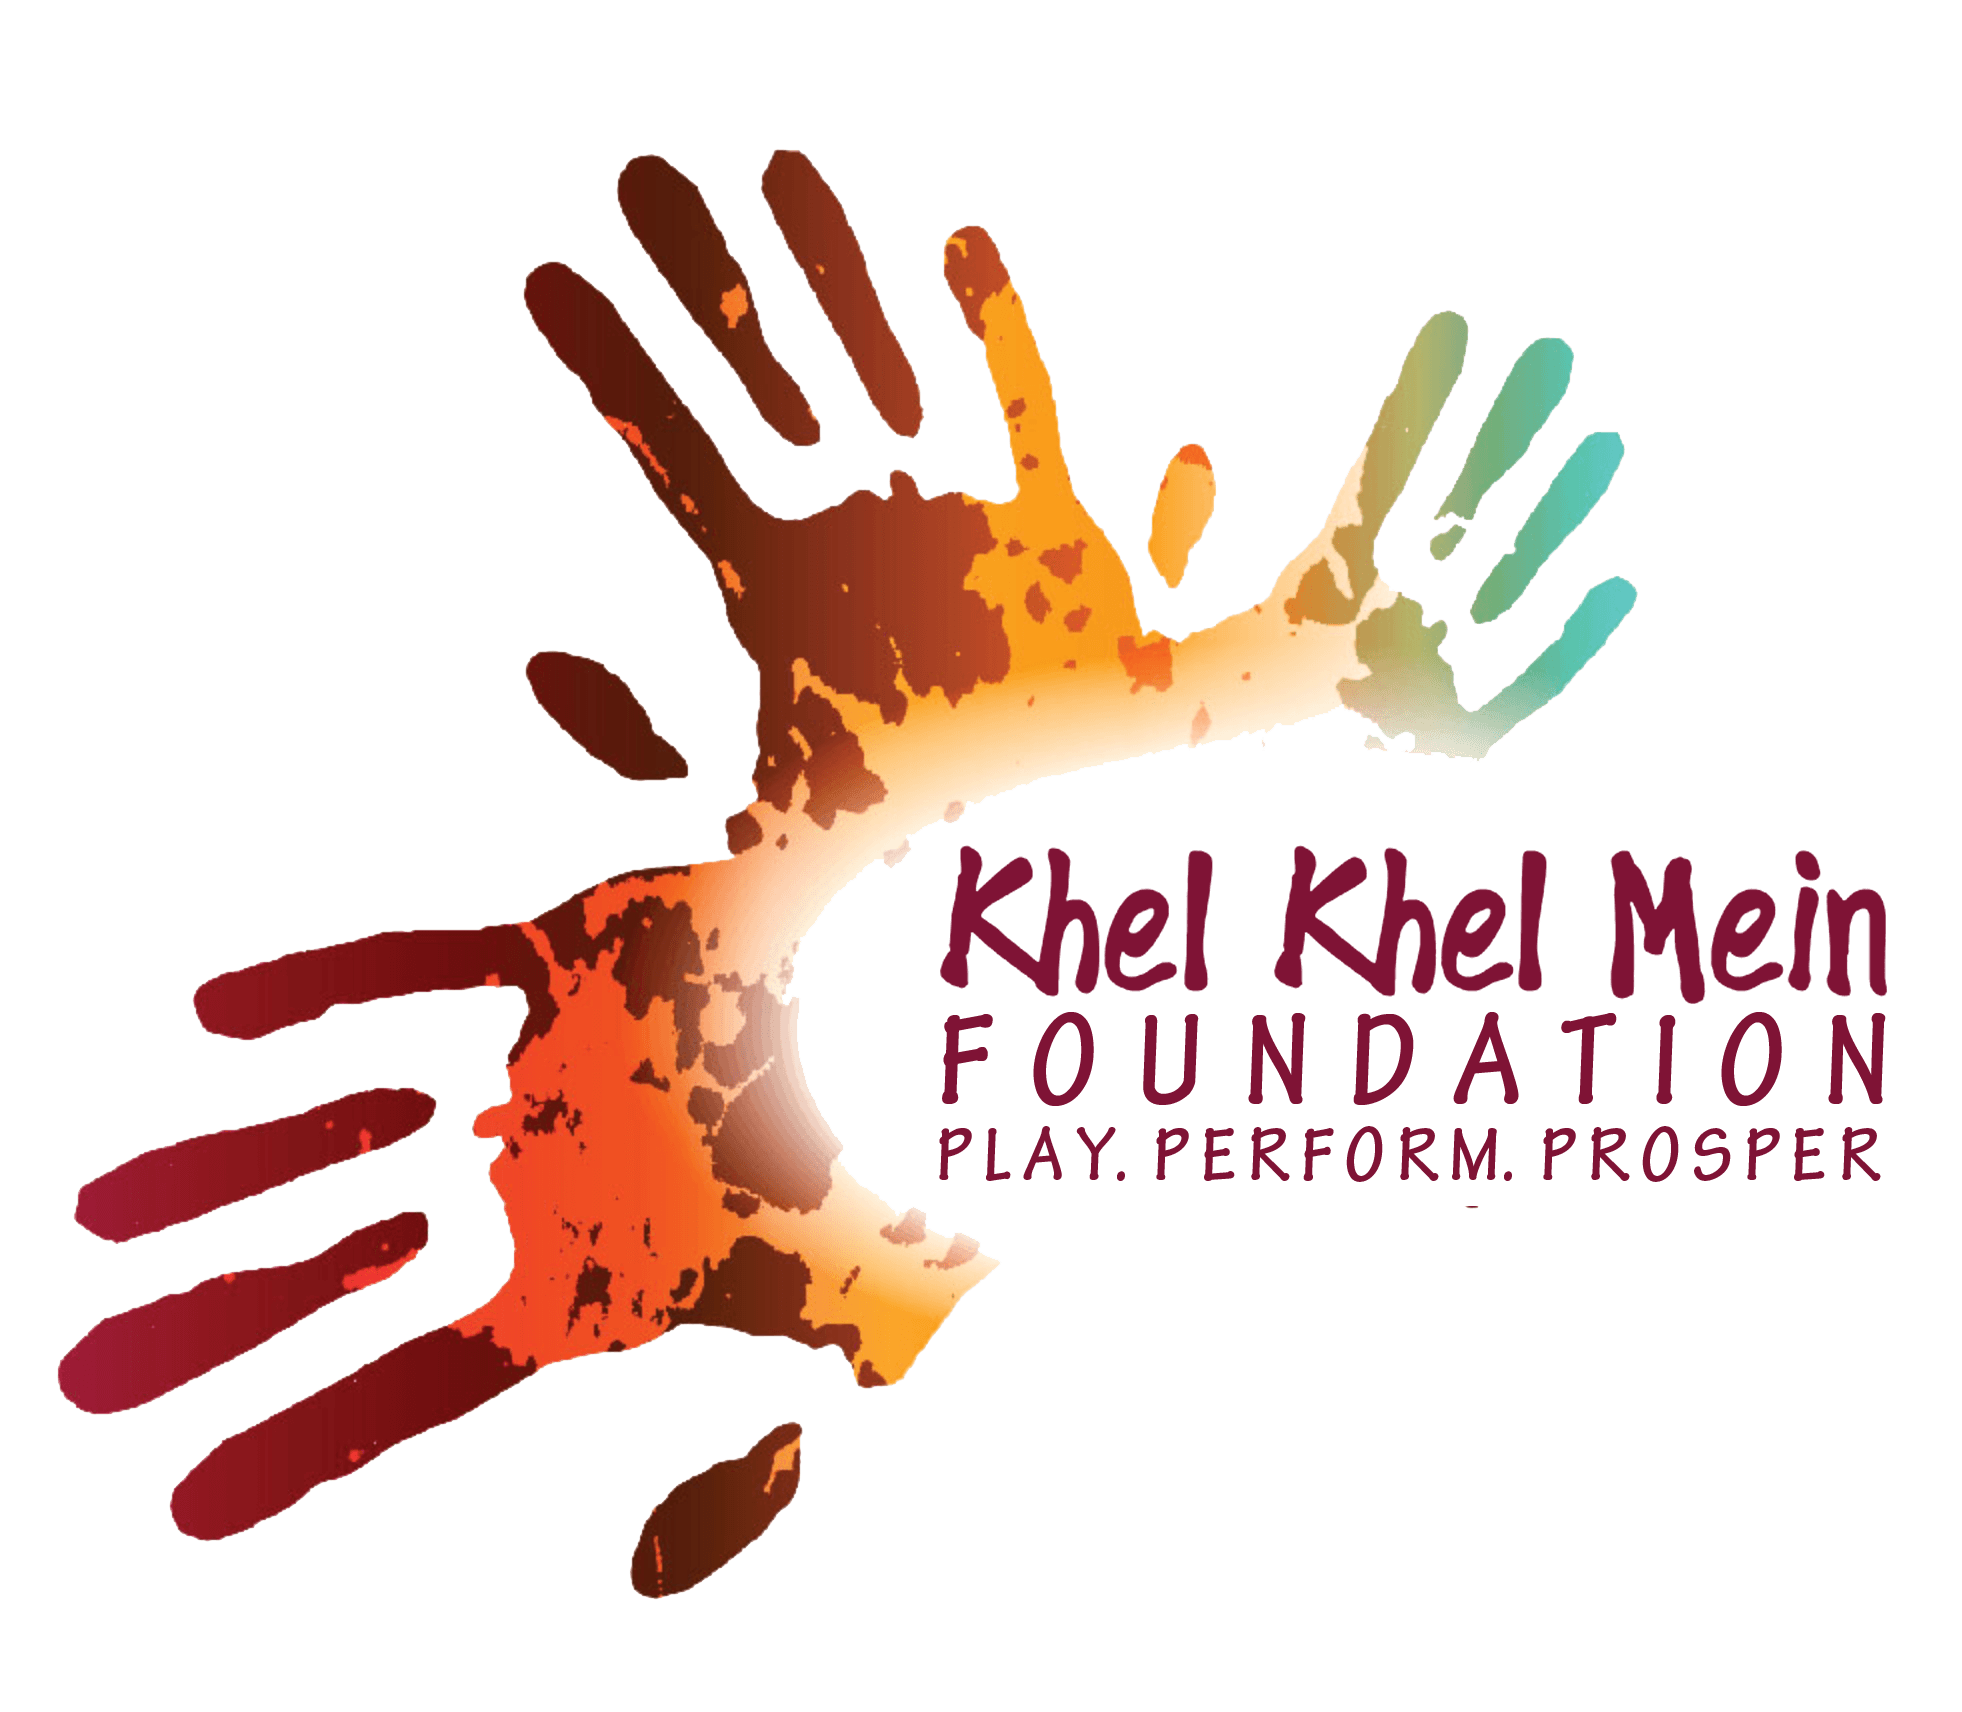 Khel Khel Mein Foundation